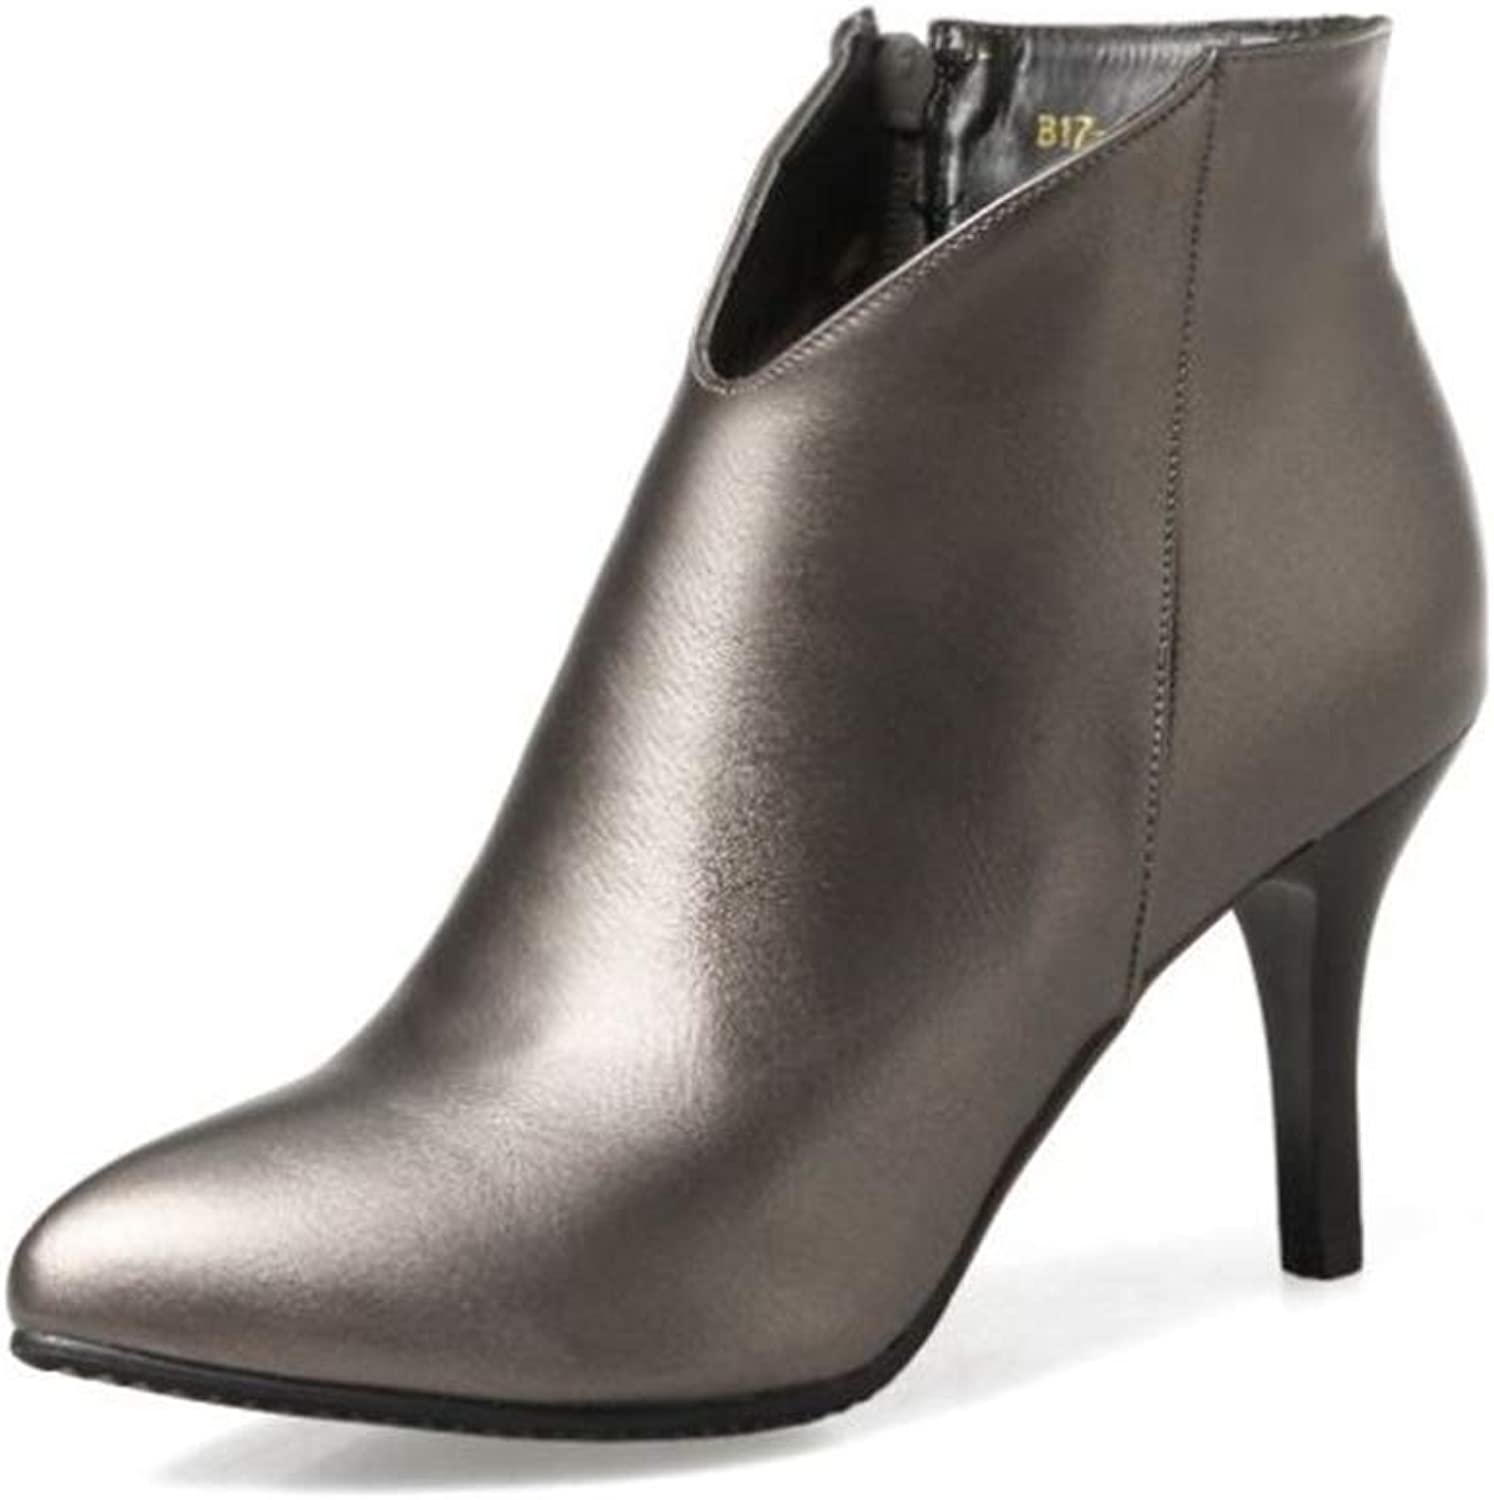 CHENSF Women High Heels Ankle Boots Pointed Toe Slip On Stilettos shoes